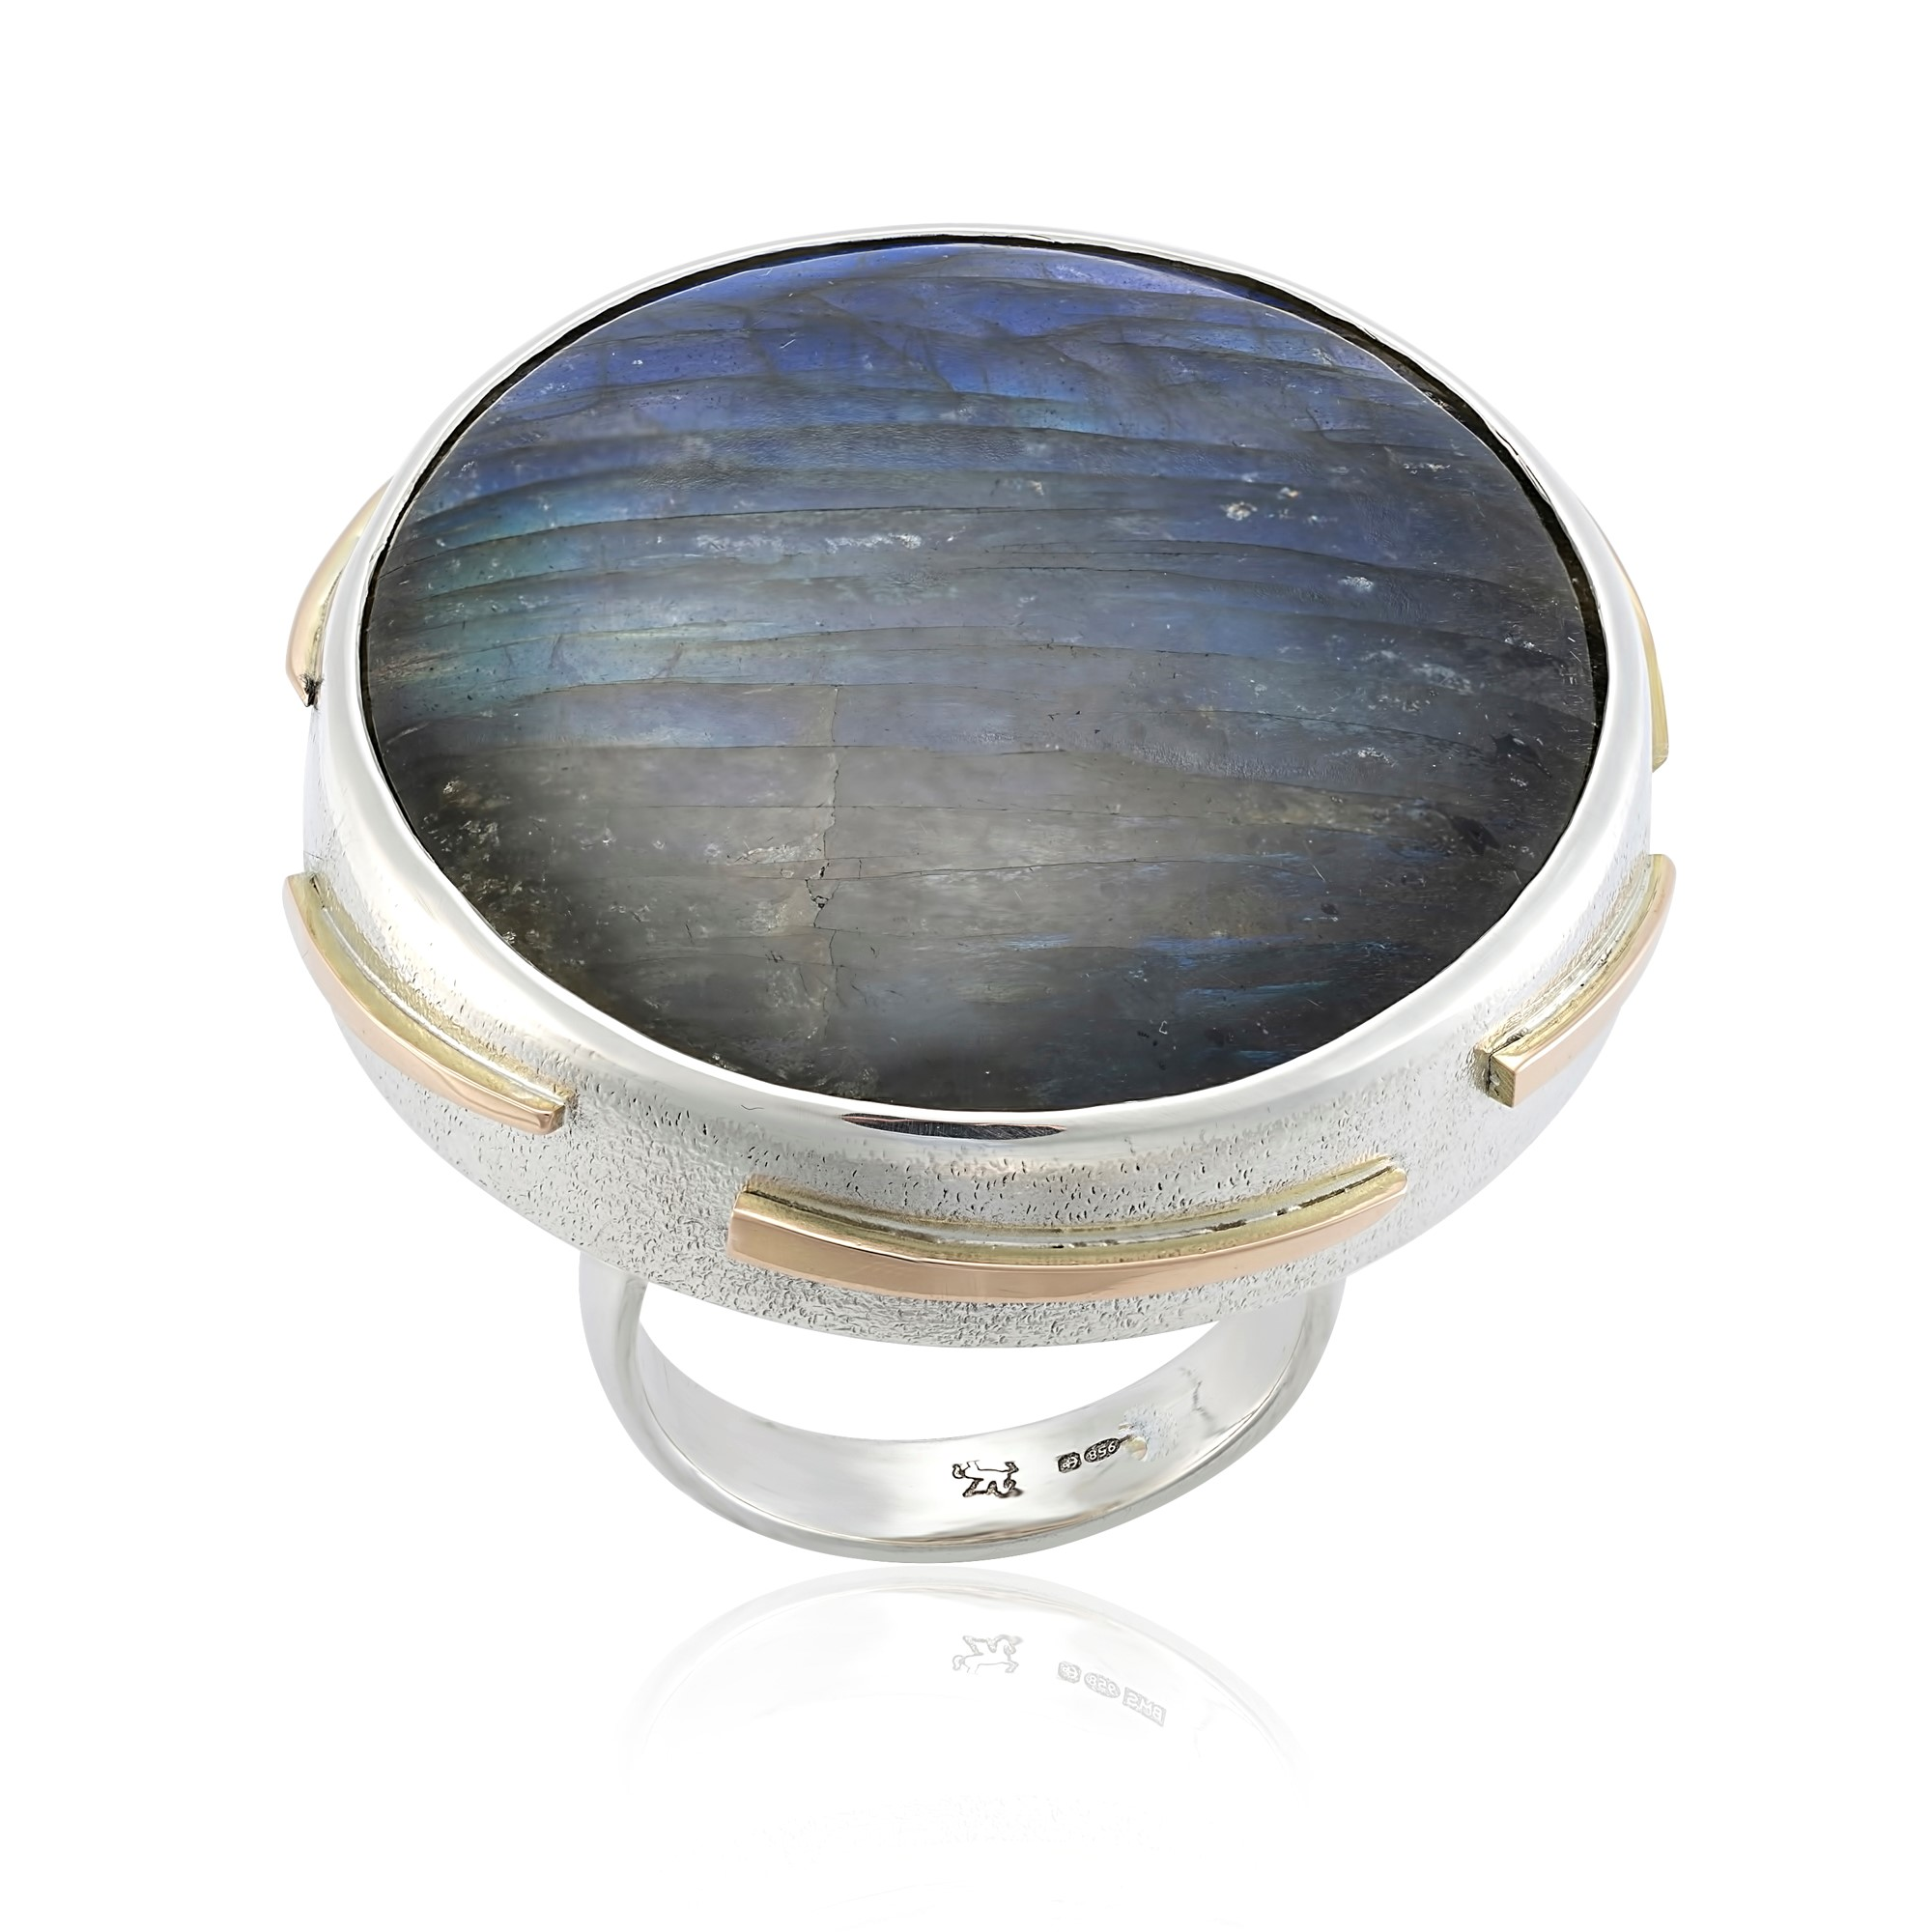 Labradorite in silver with gold detail this is a stunning blue sheen labradorite which has not been caught in the photo well however is stunning ,a big dress ring  AVAILABLE  ring size O